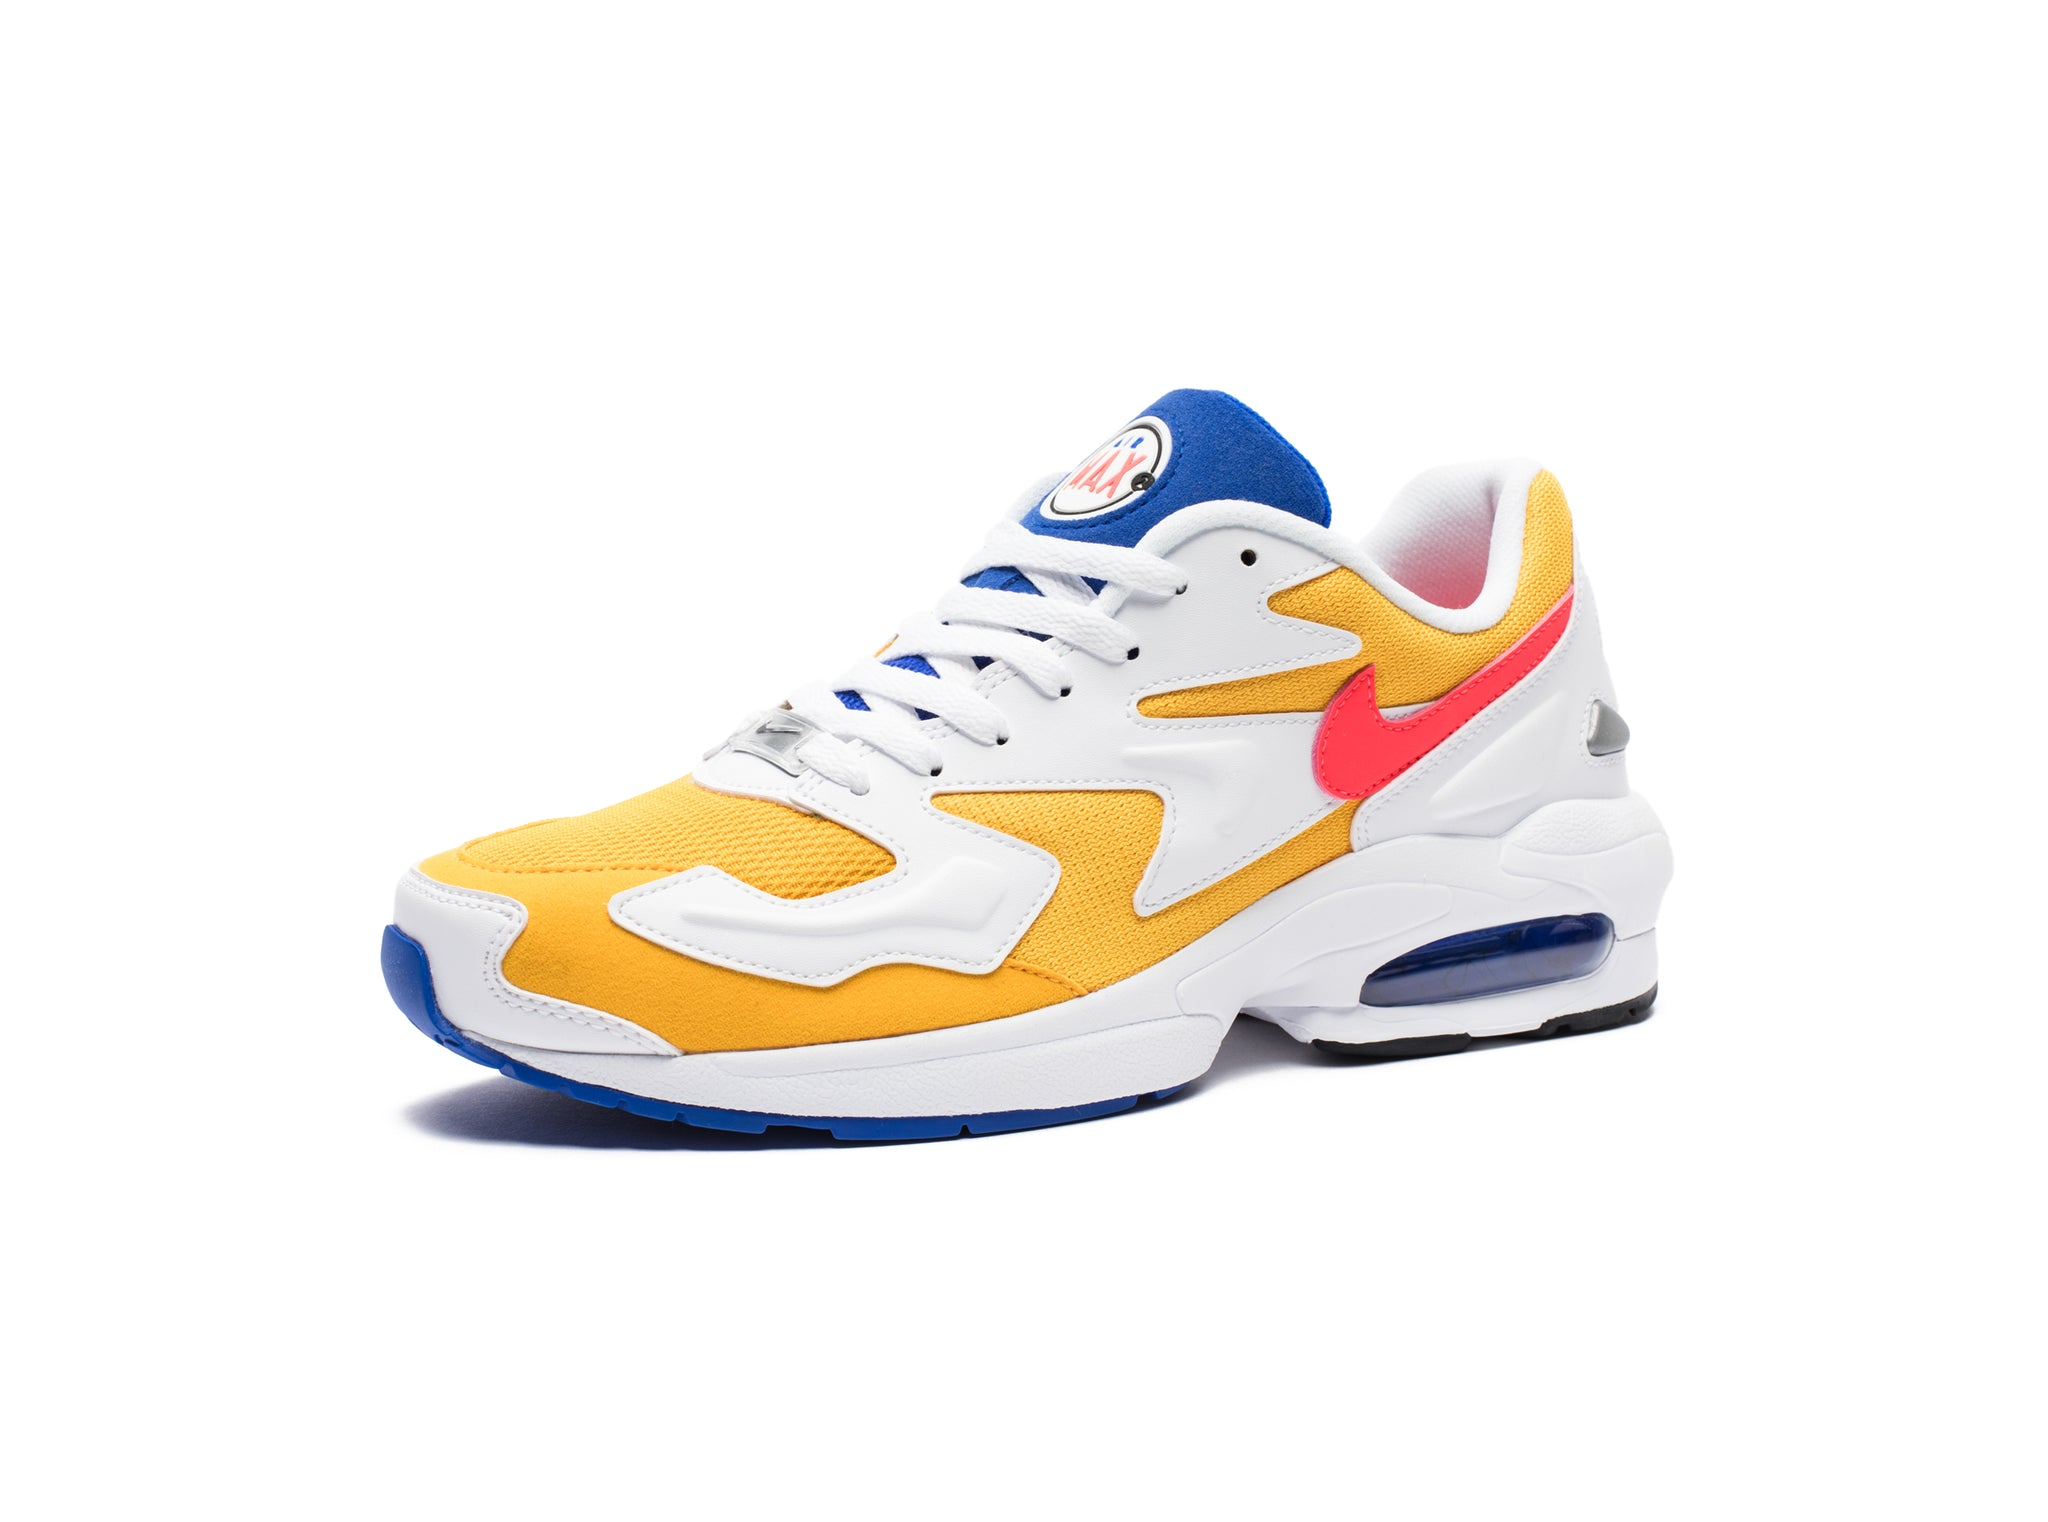 AIR MAX2 LIGHT - UNIVERSITYGOLD/FLASHCRIMSON/RACERBLUE